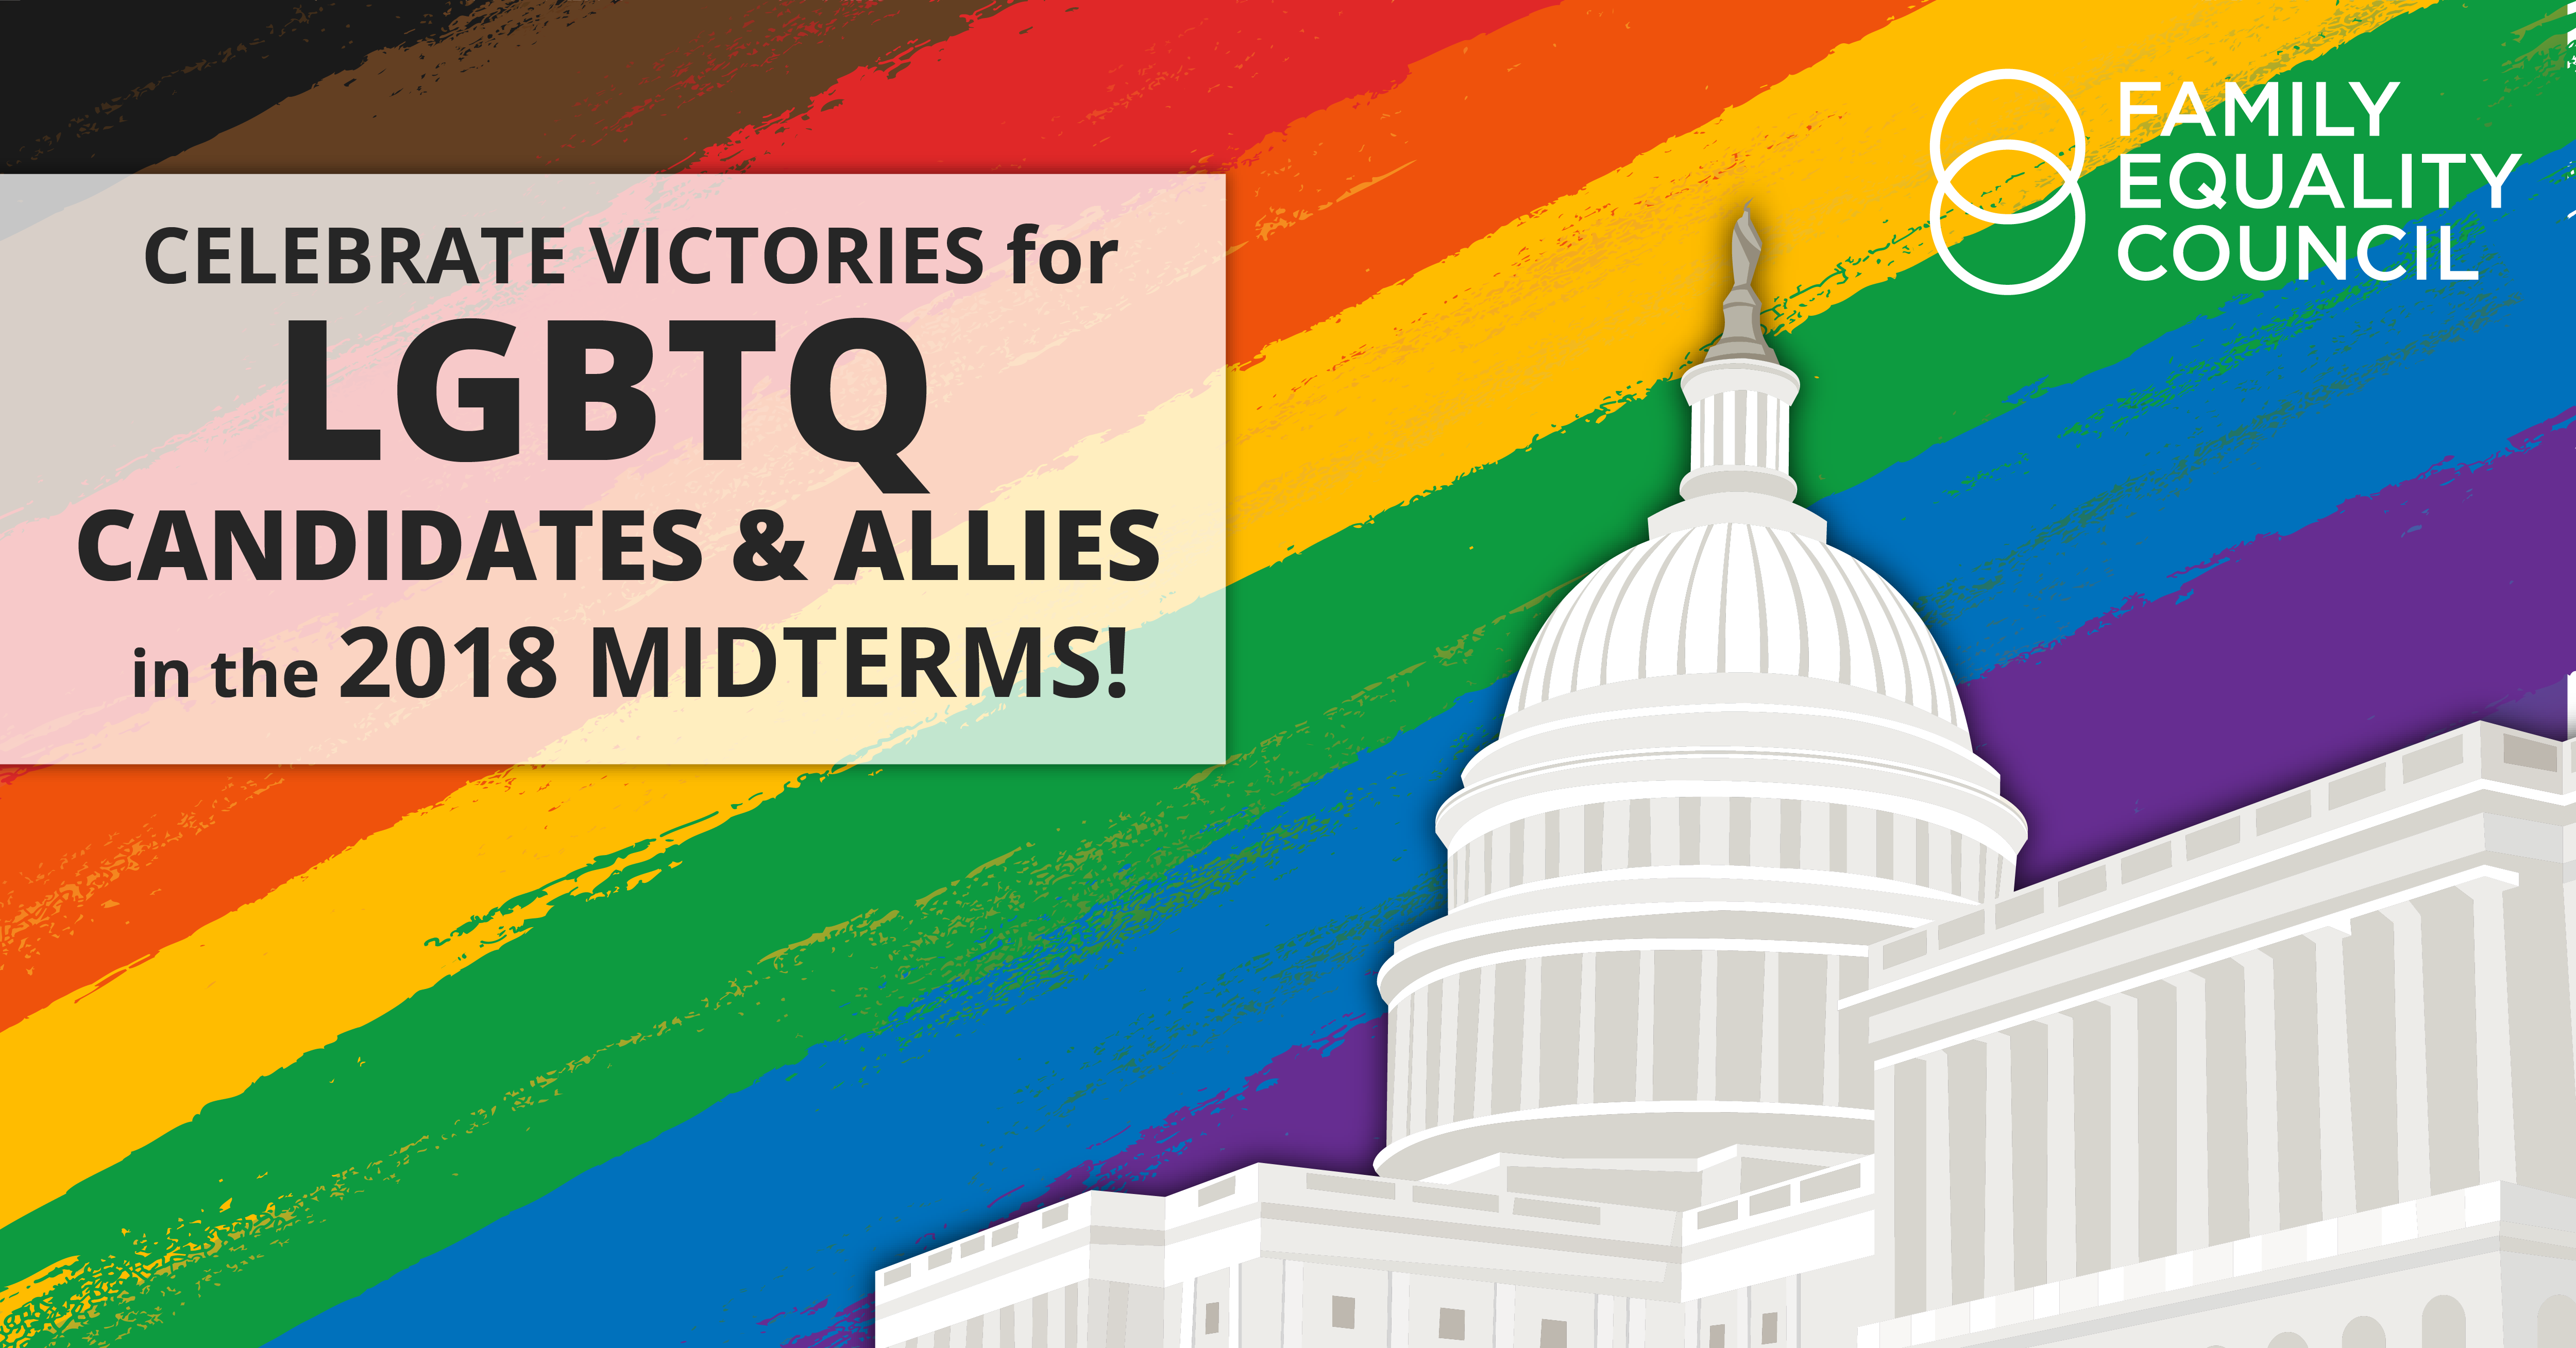 Celebrate LGBTQ Victories in the Midterms!